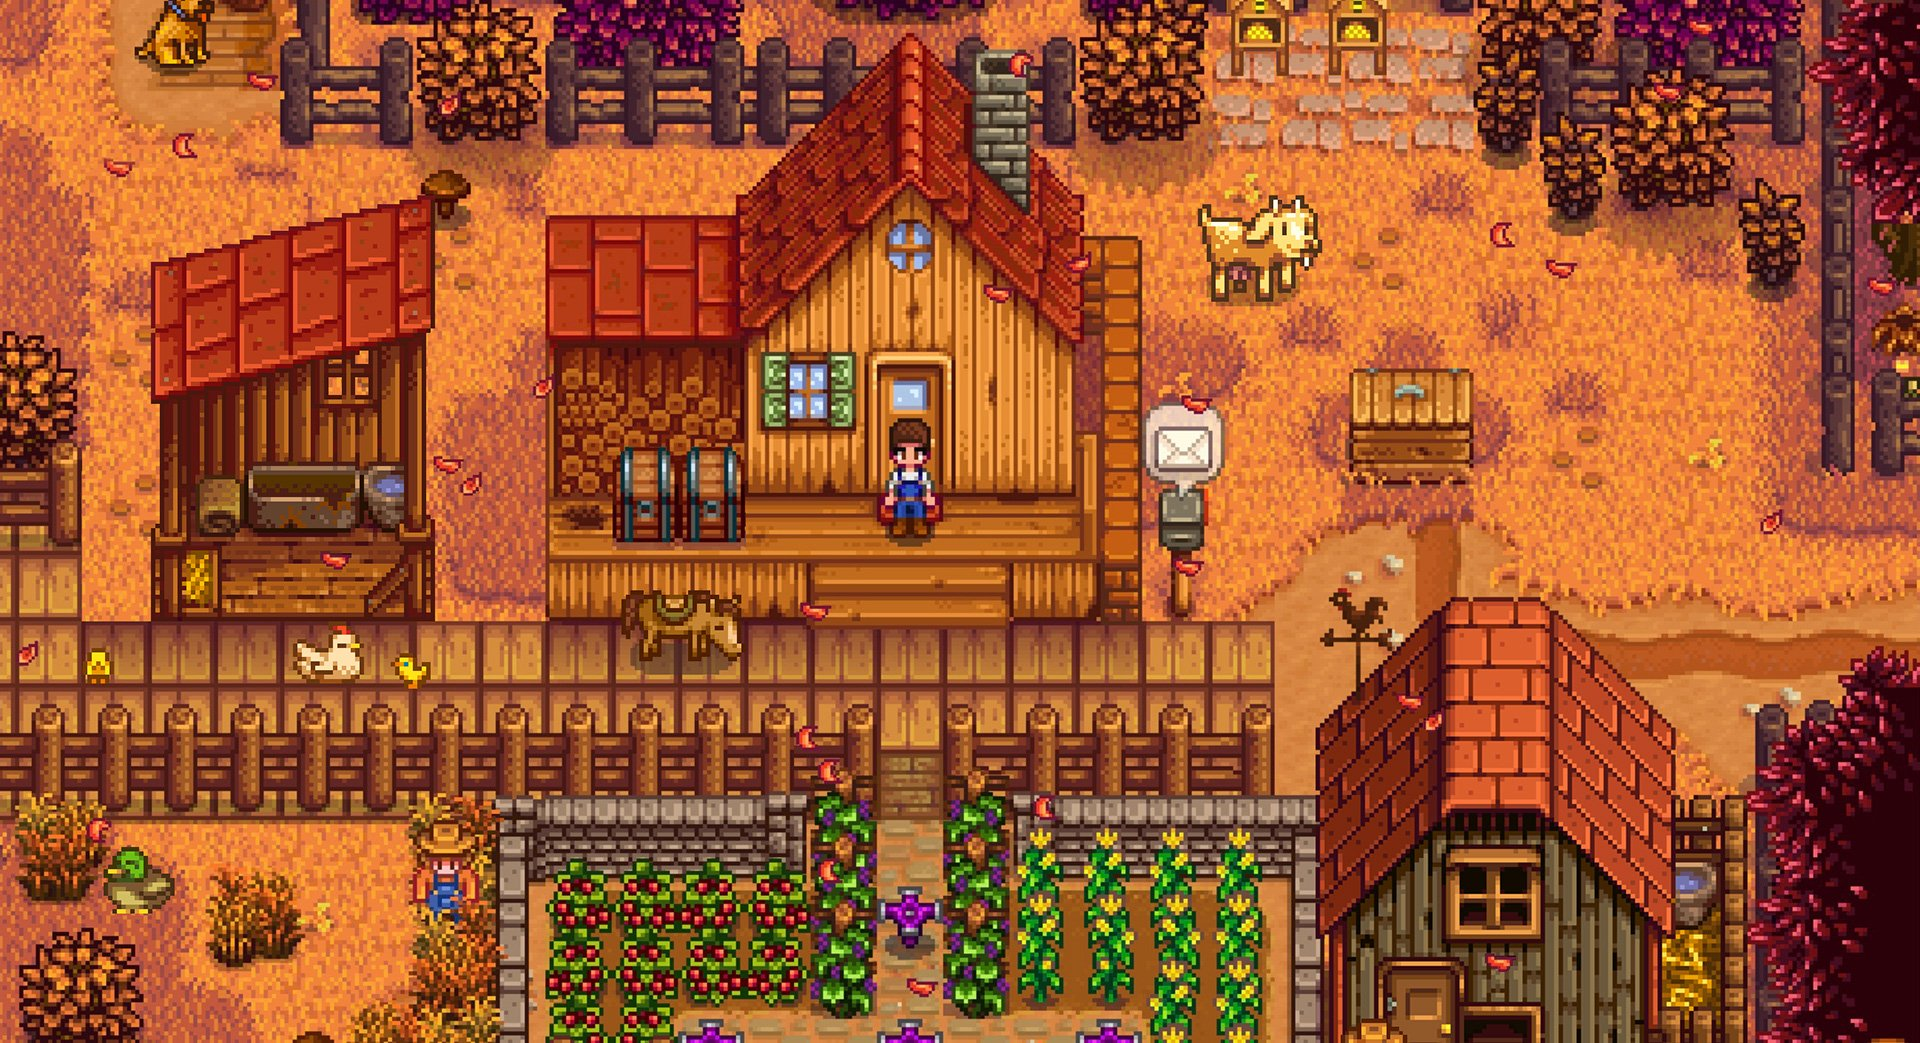 After hundreds of hours of Stardew Valley, I just learned there's an easier way to greet animals screenshot